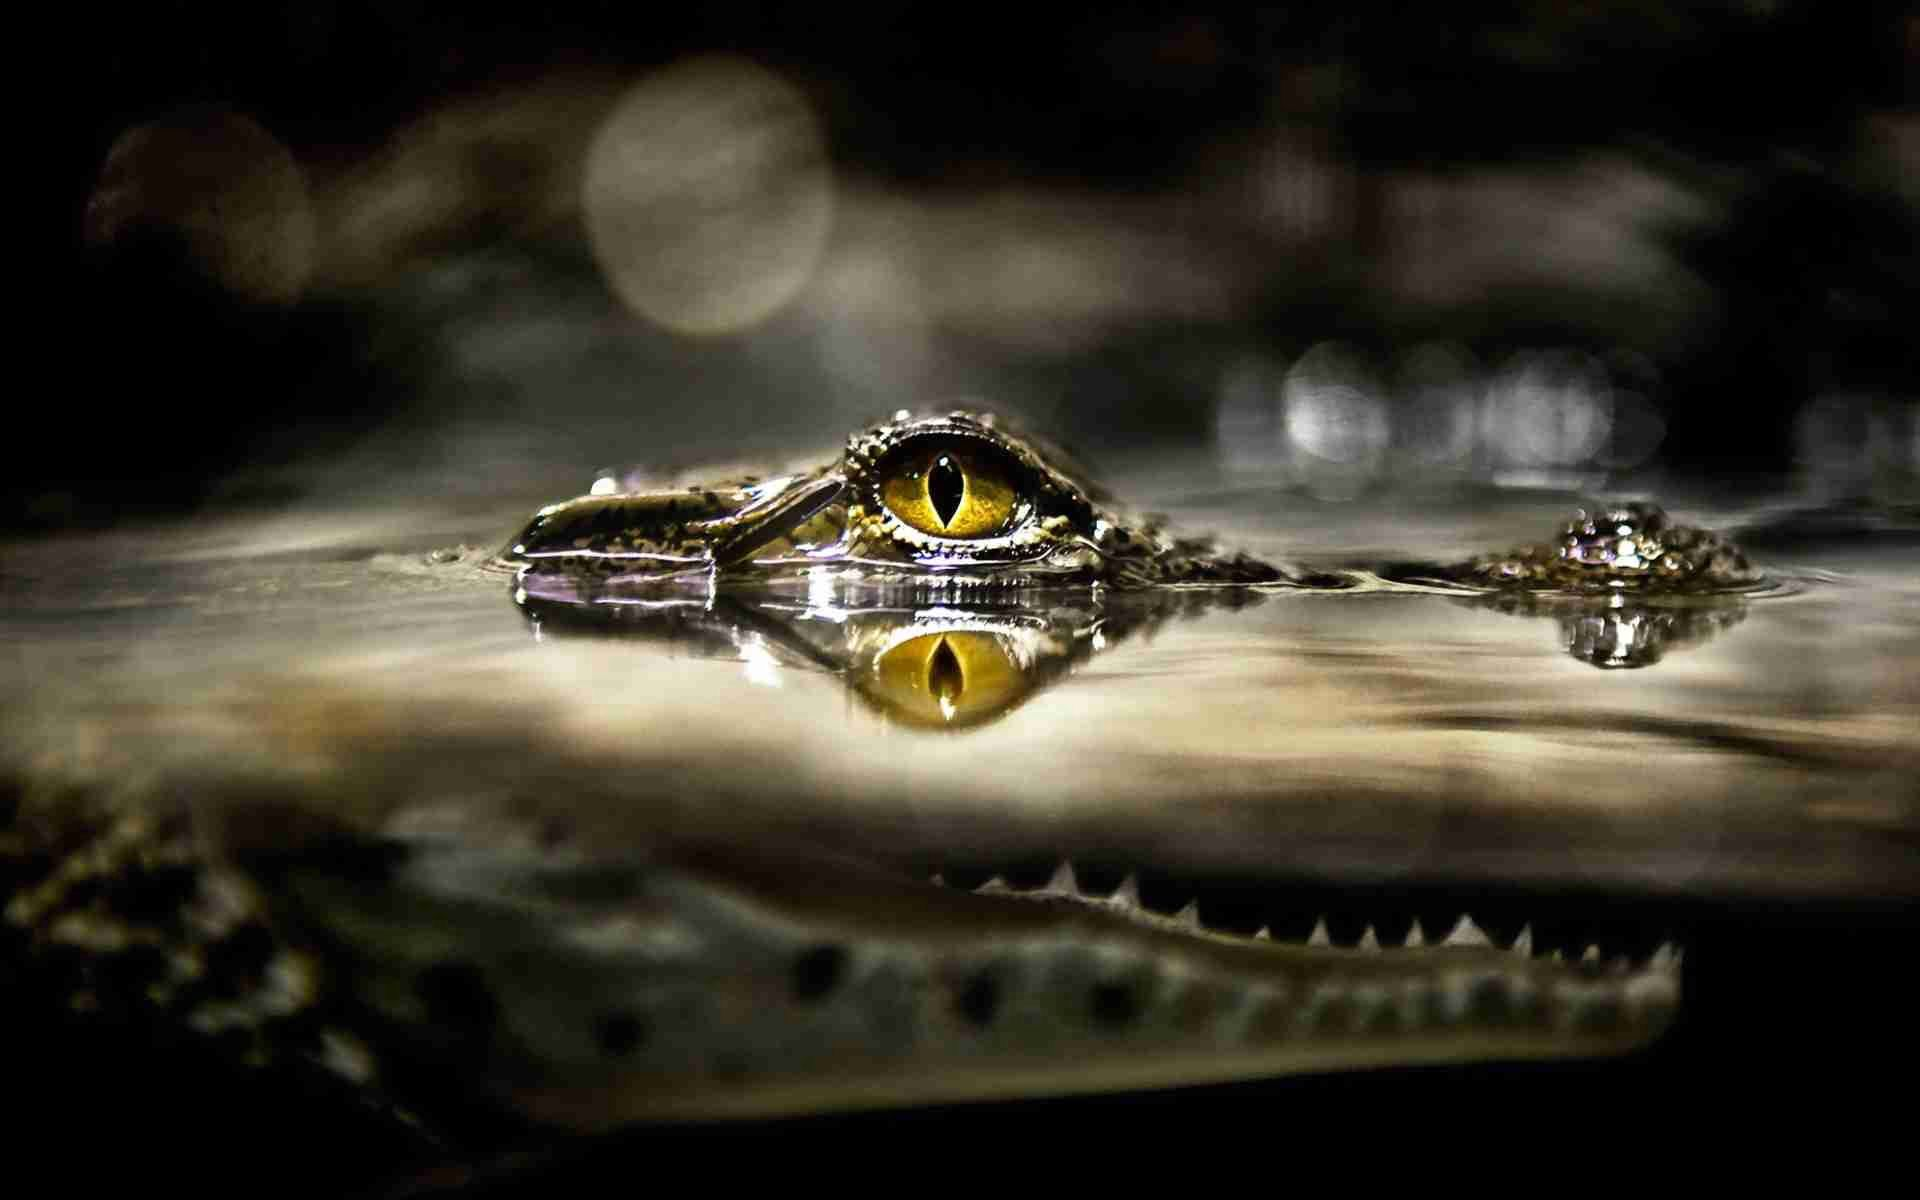 104841 download wallpaper Animals, Crocodile, Eye, Water, Predator, Hunting, Hunt, Lurk, Hide screensavers and pictures for free